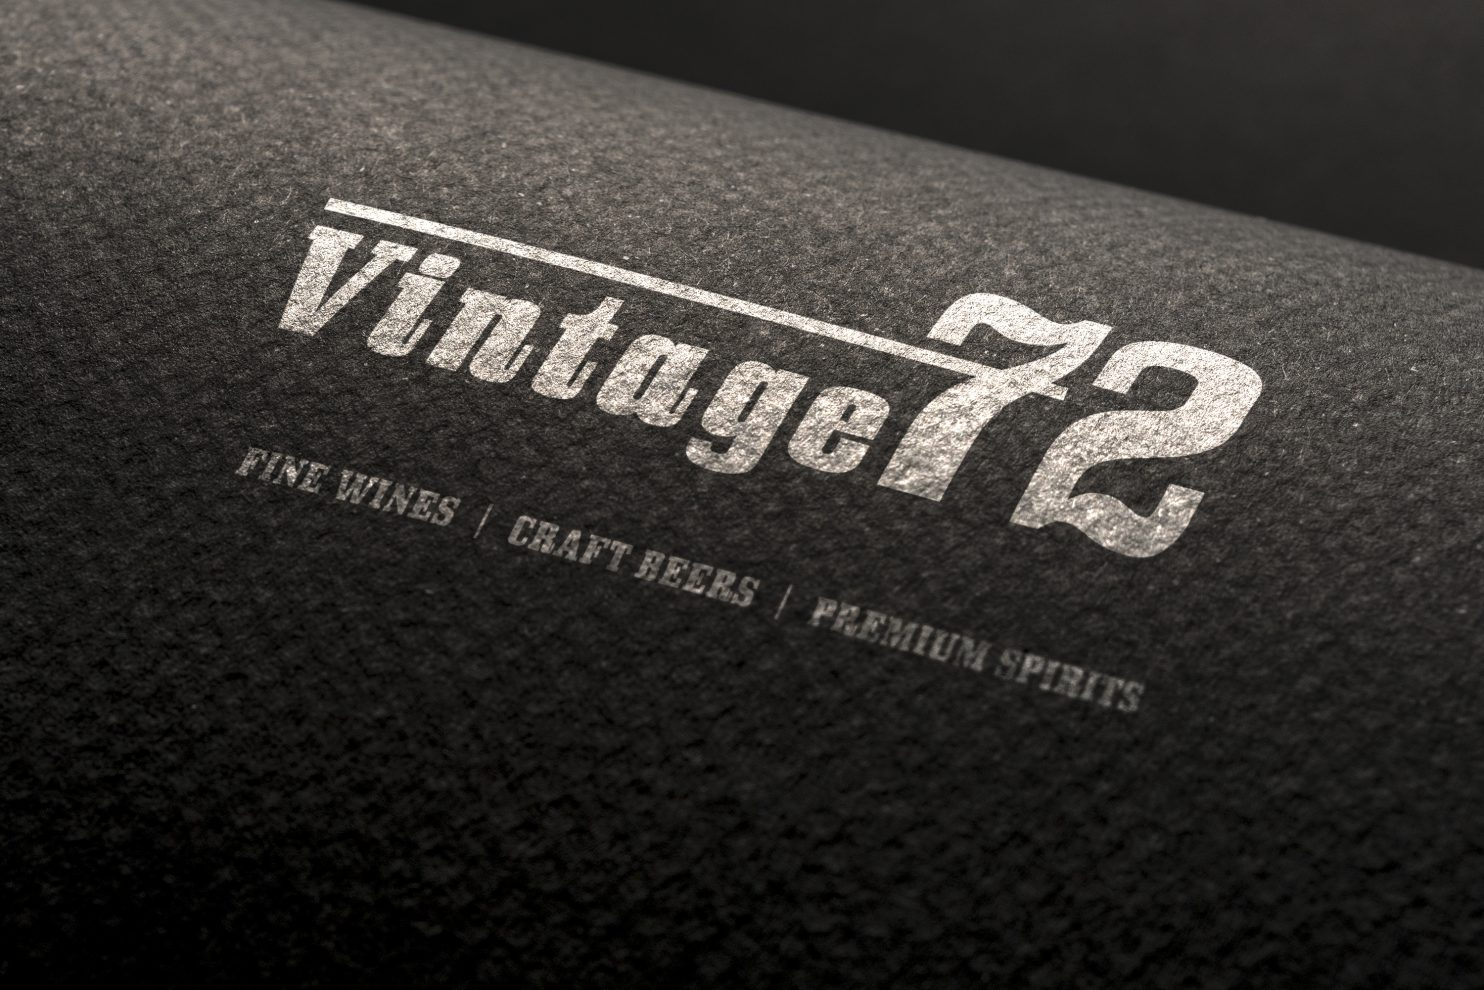 Logo design mockup for Vintage72 cellars in Rosanna